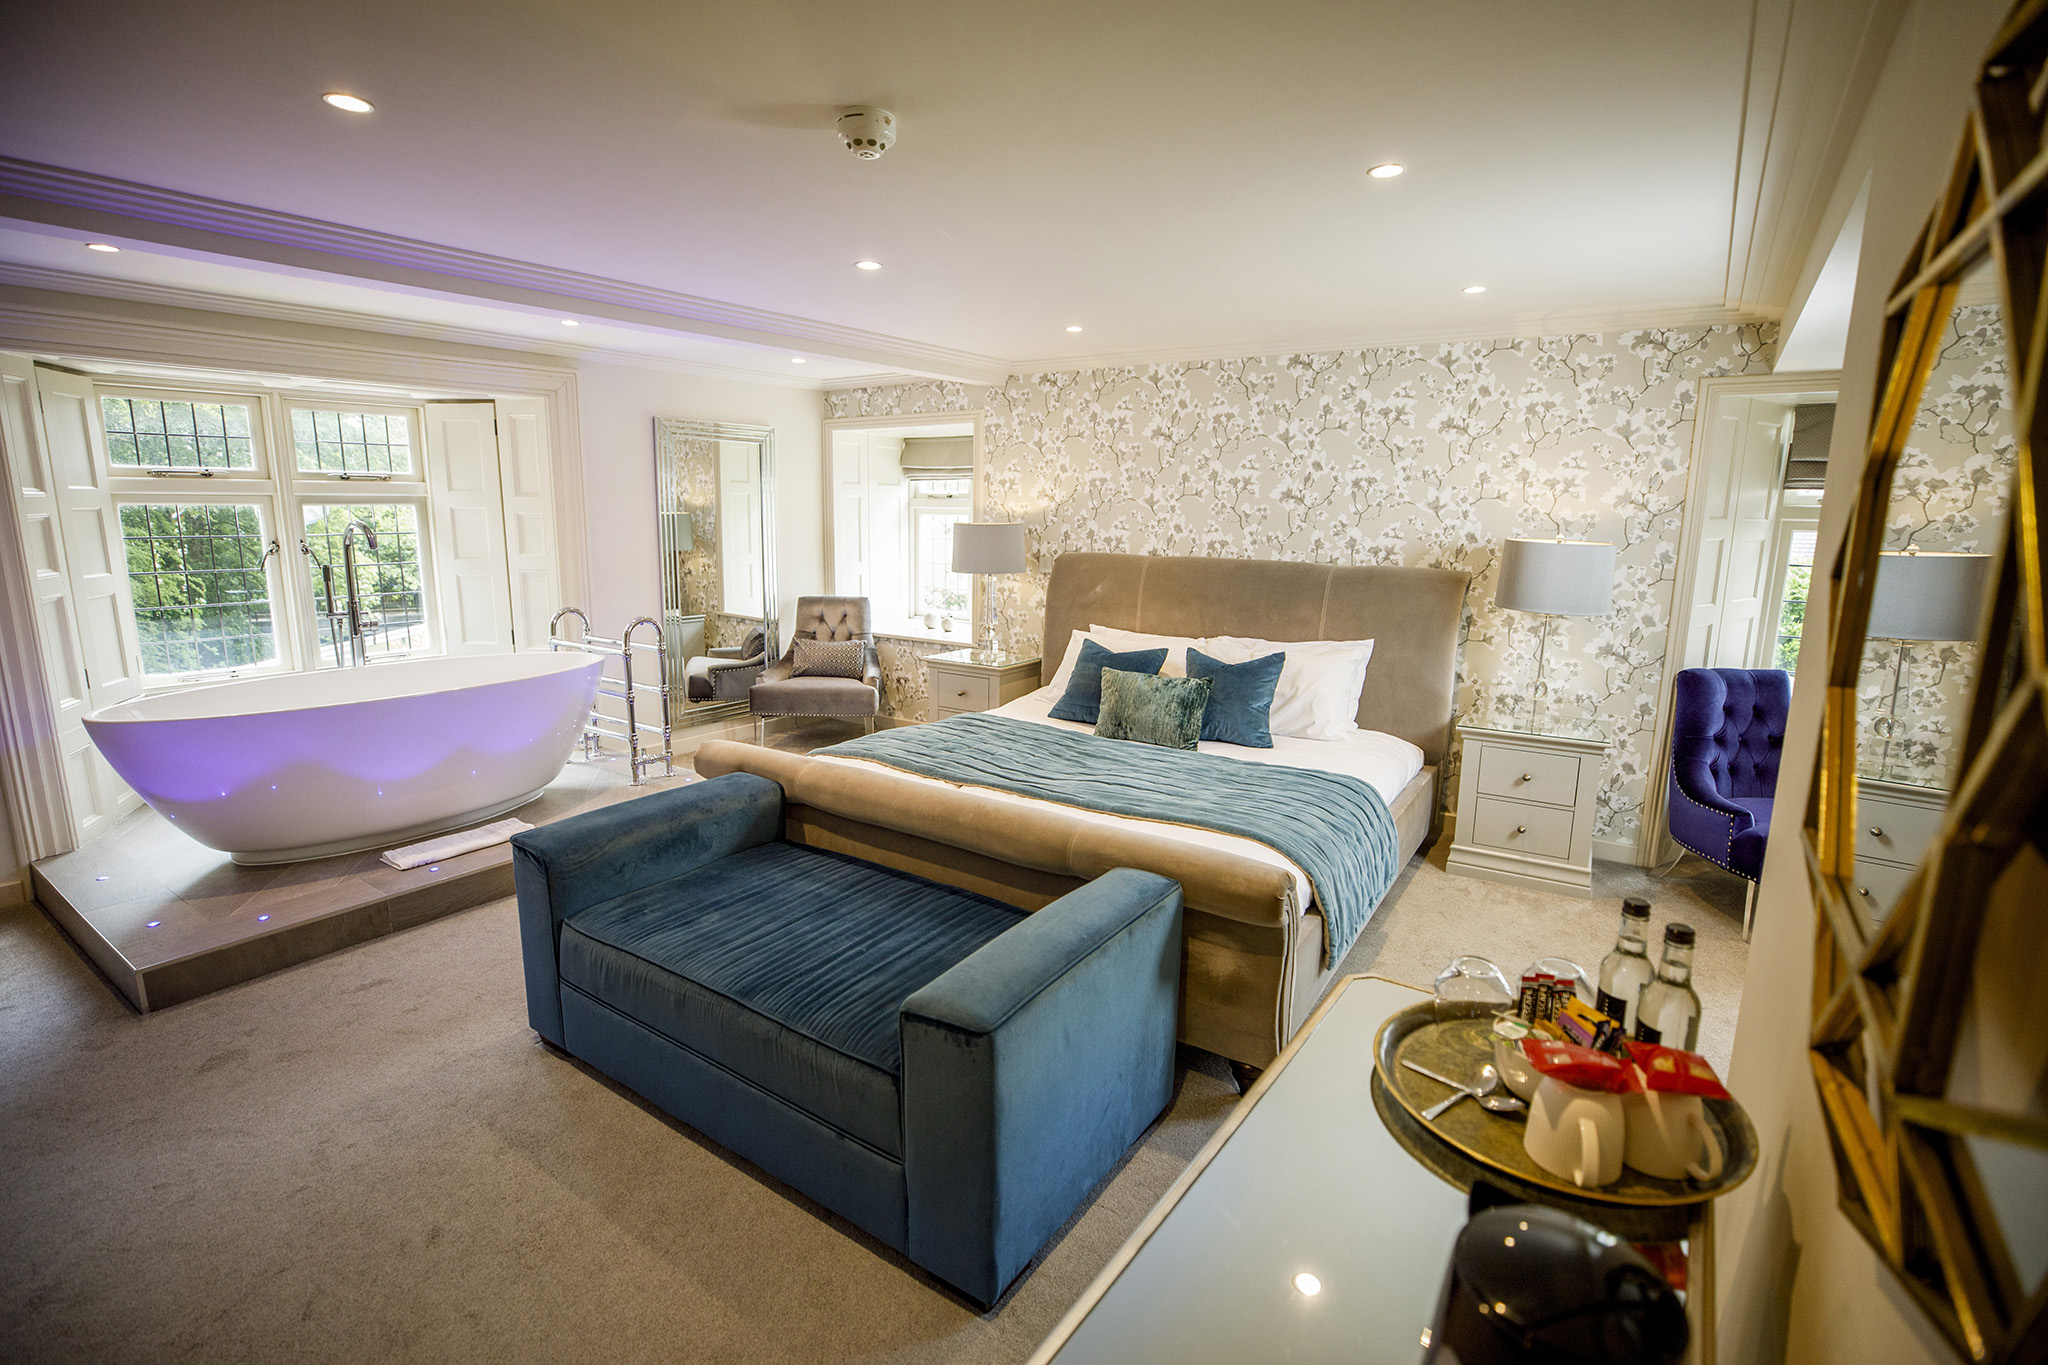 master hotel suite with large blue bed and ottoman with luxury decor and a large freestanding bath